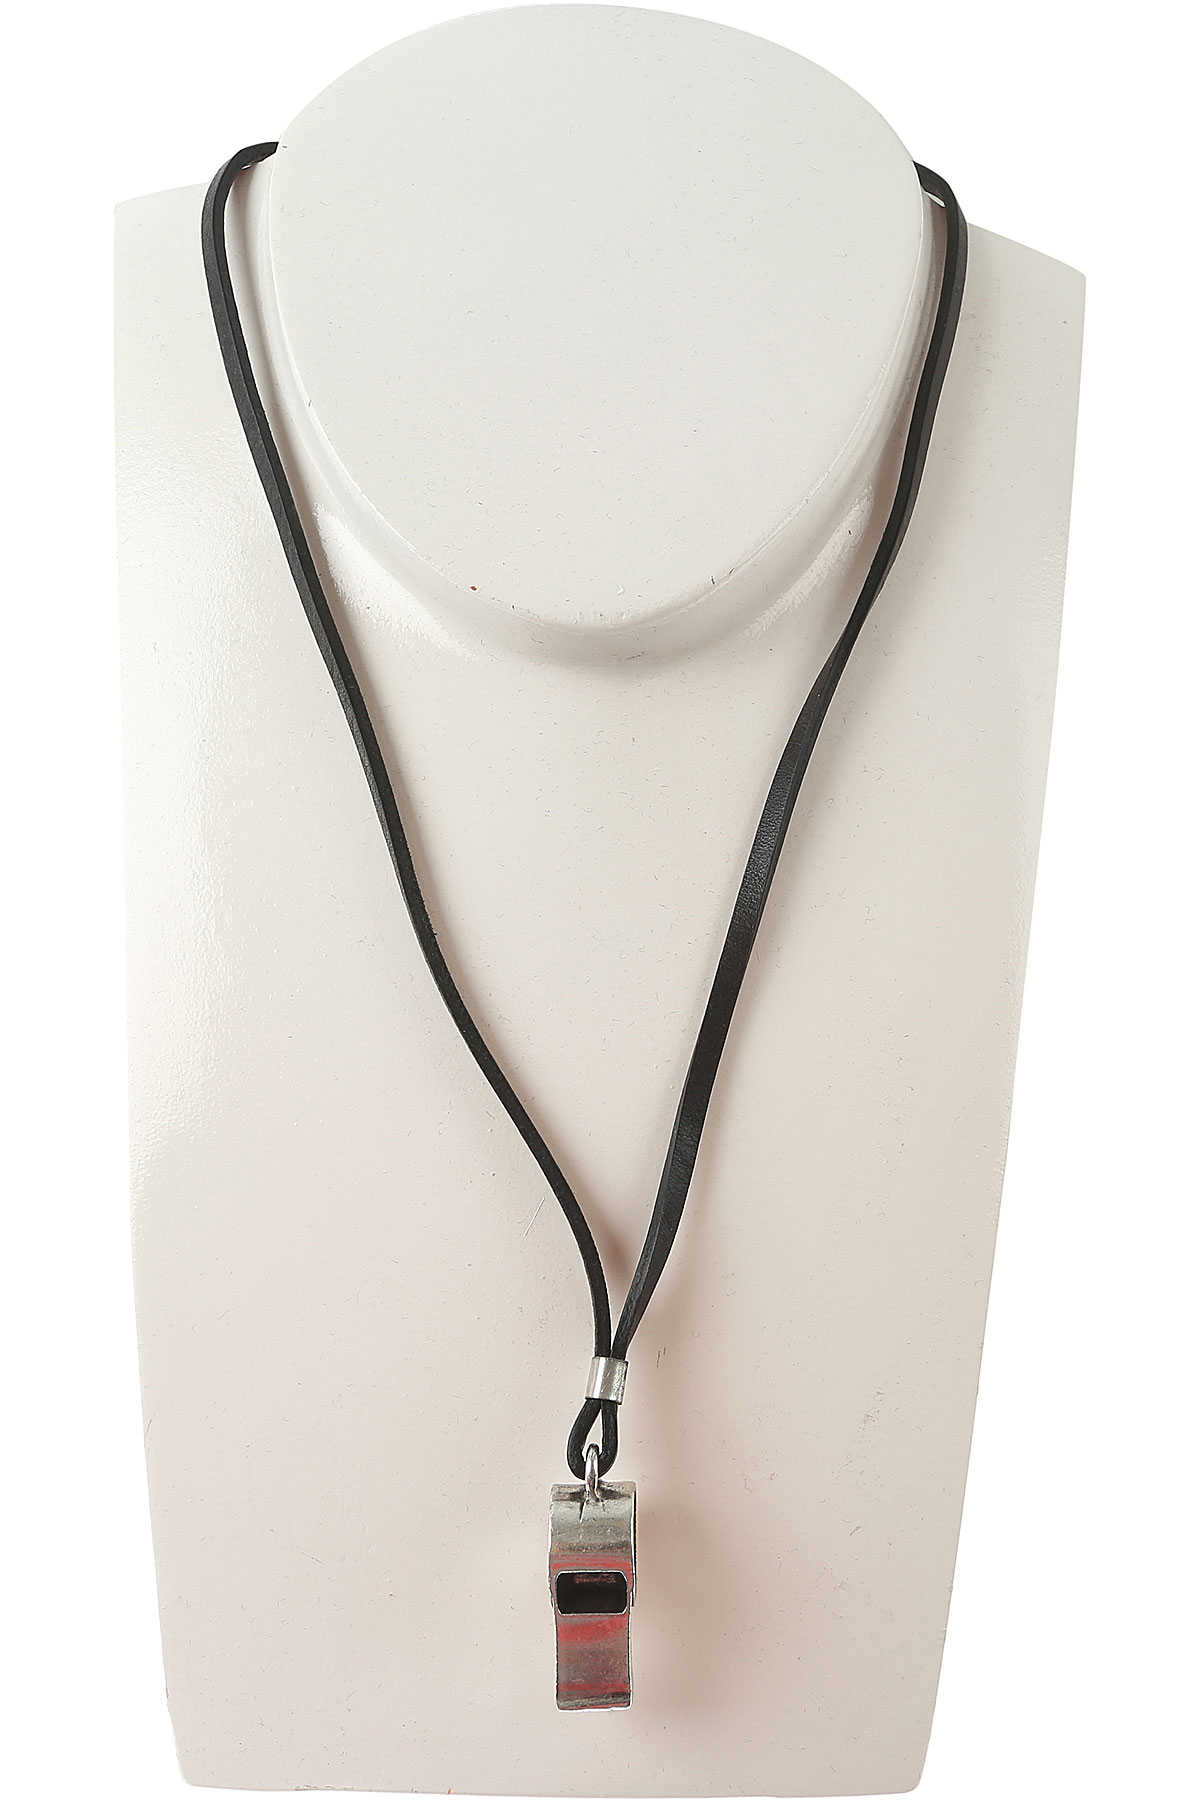 Diesel Necklaces in Outlet Stopp USA - GOOFASH